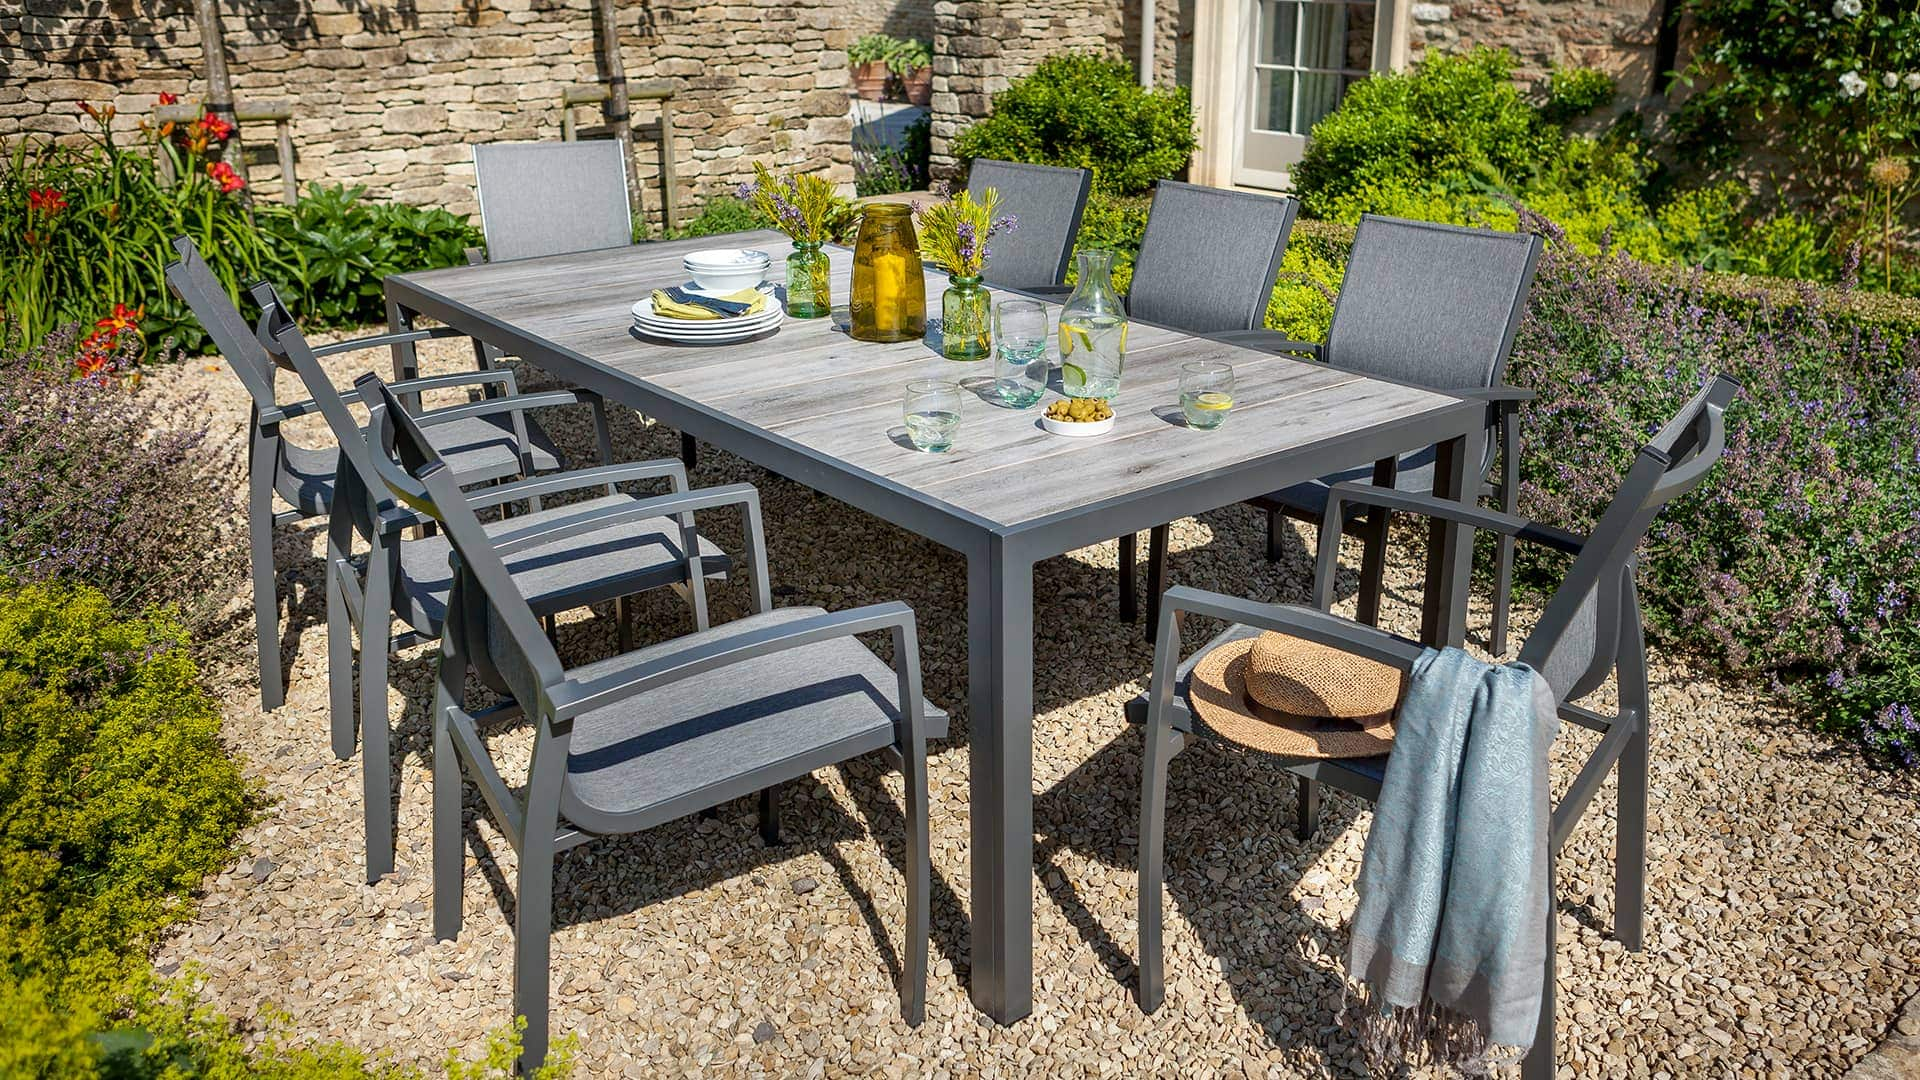 Home - Hartman Outdoor Furniture Products UK